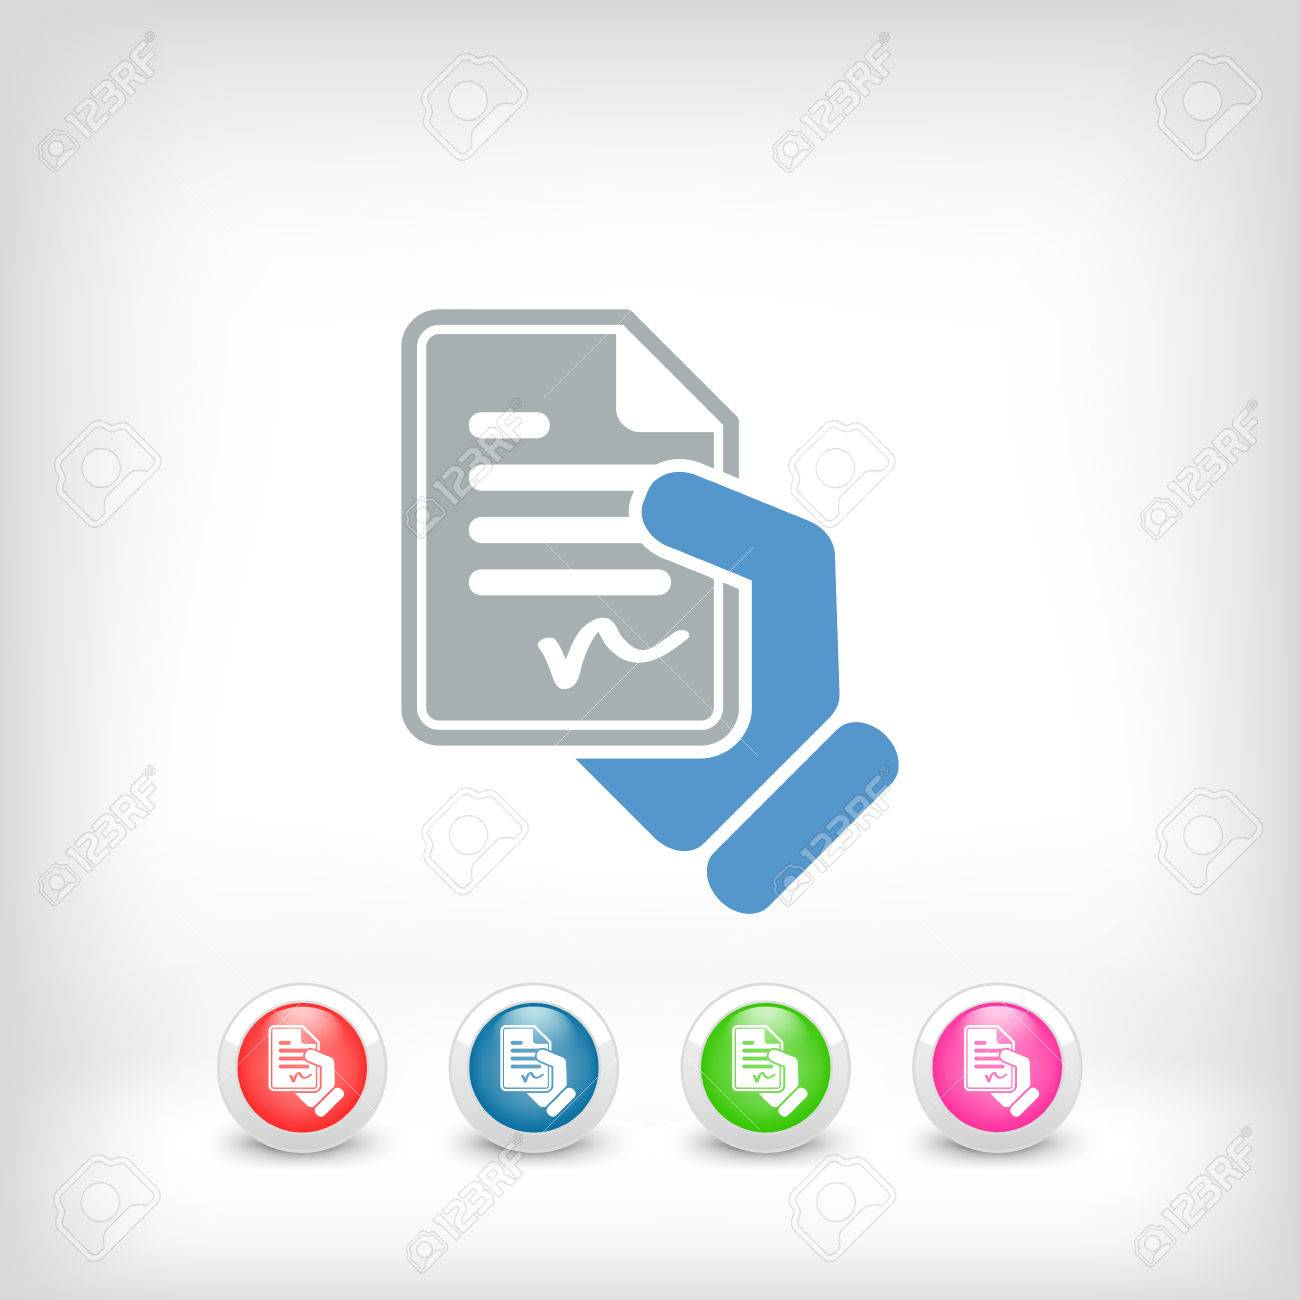 Document signed icon Stock Vector - 23097540